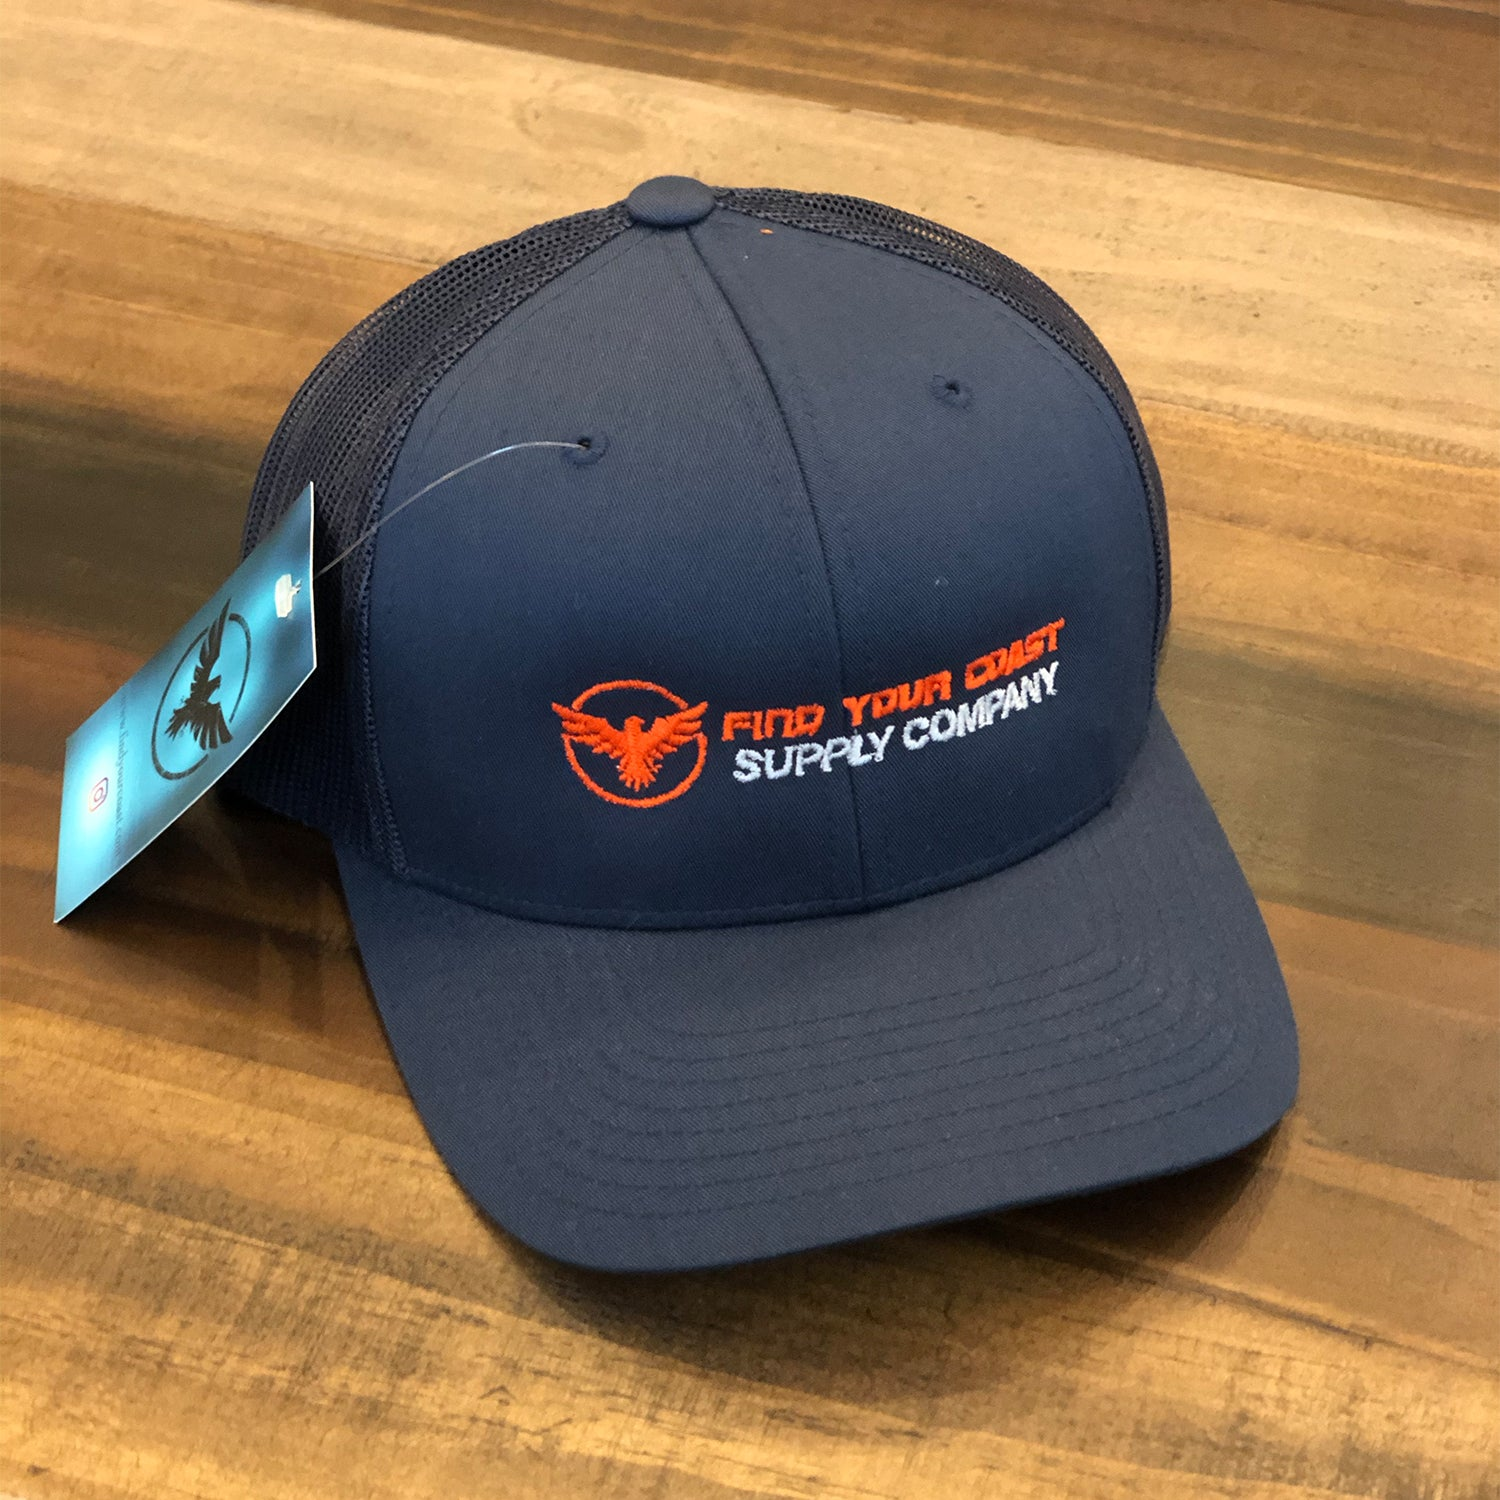 Find Your Coast Supply Company Mid-Profile Trucker Hat (CABANA SALE)